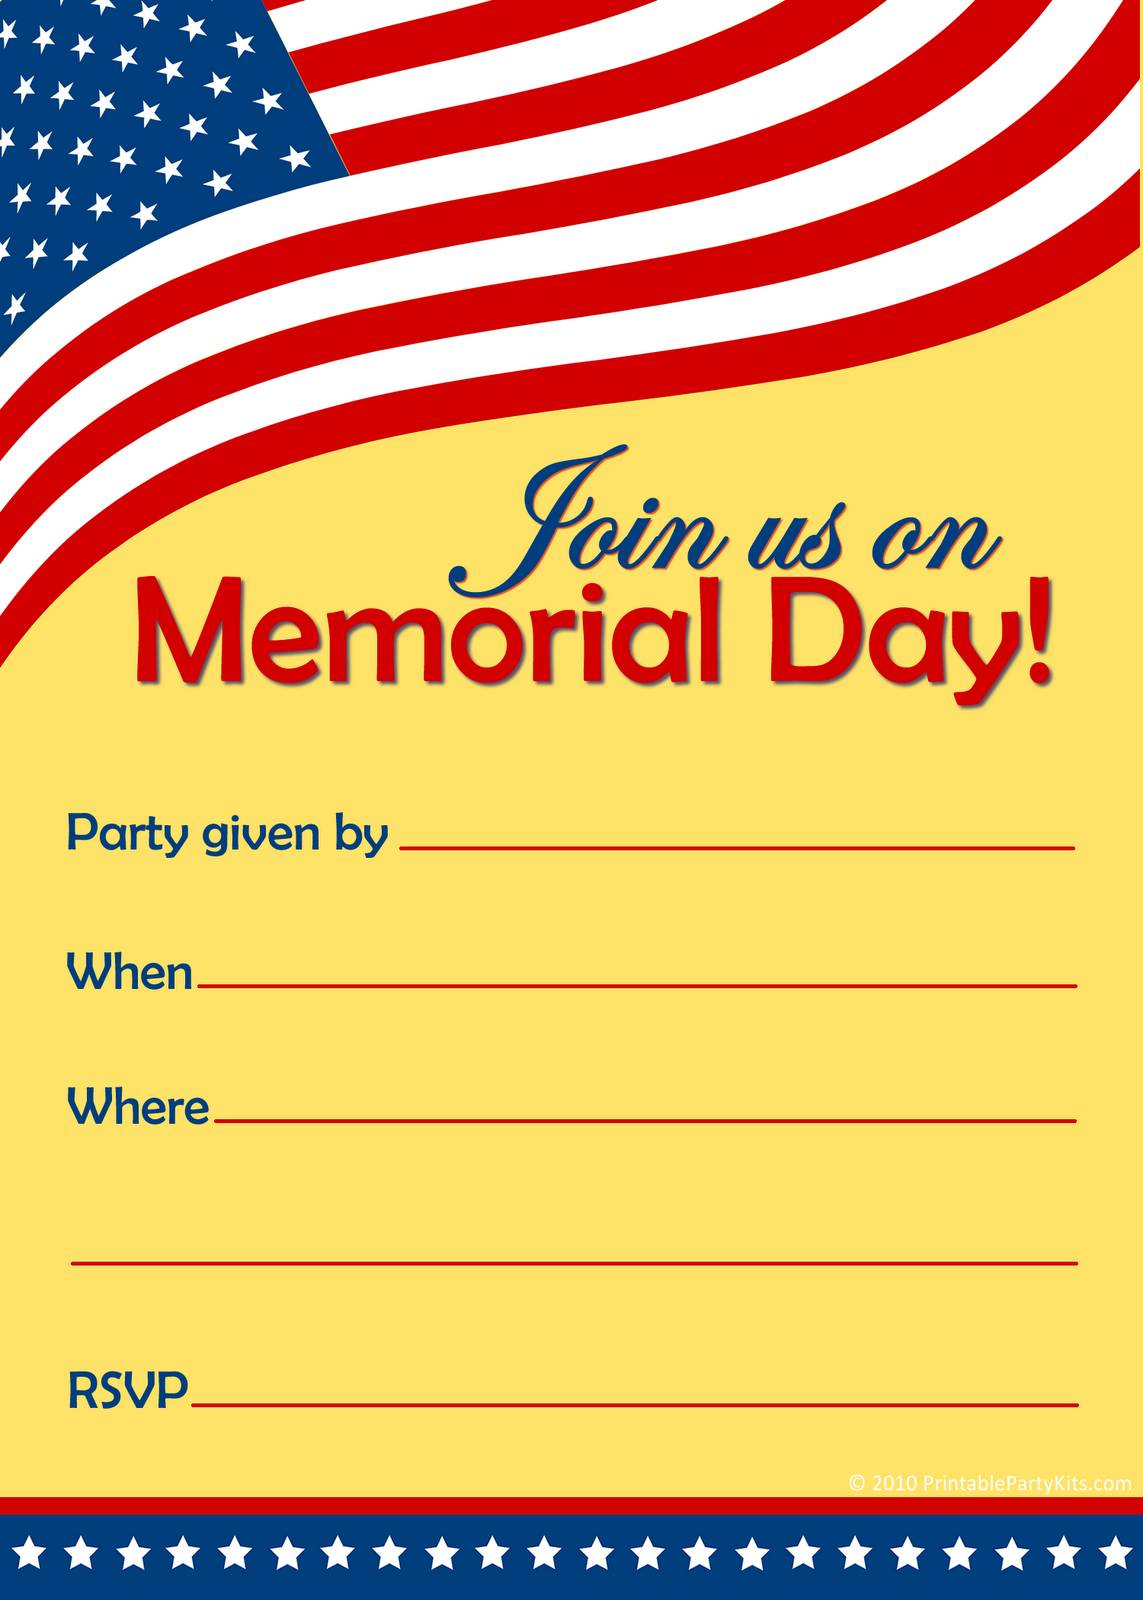 Memorial Day Party Invitation Templates